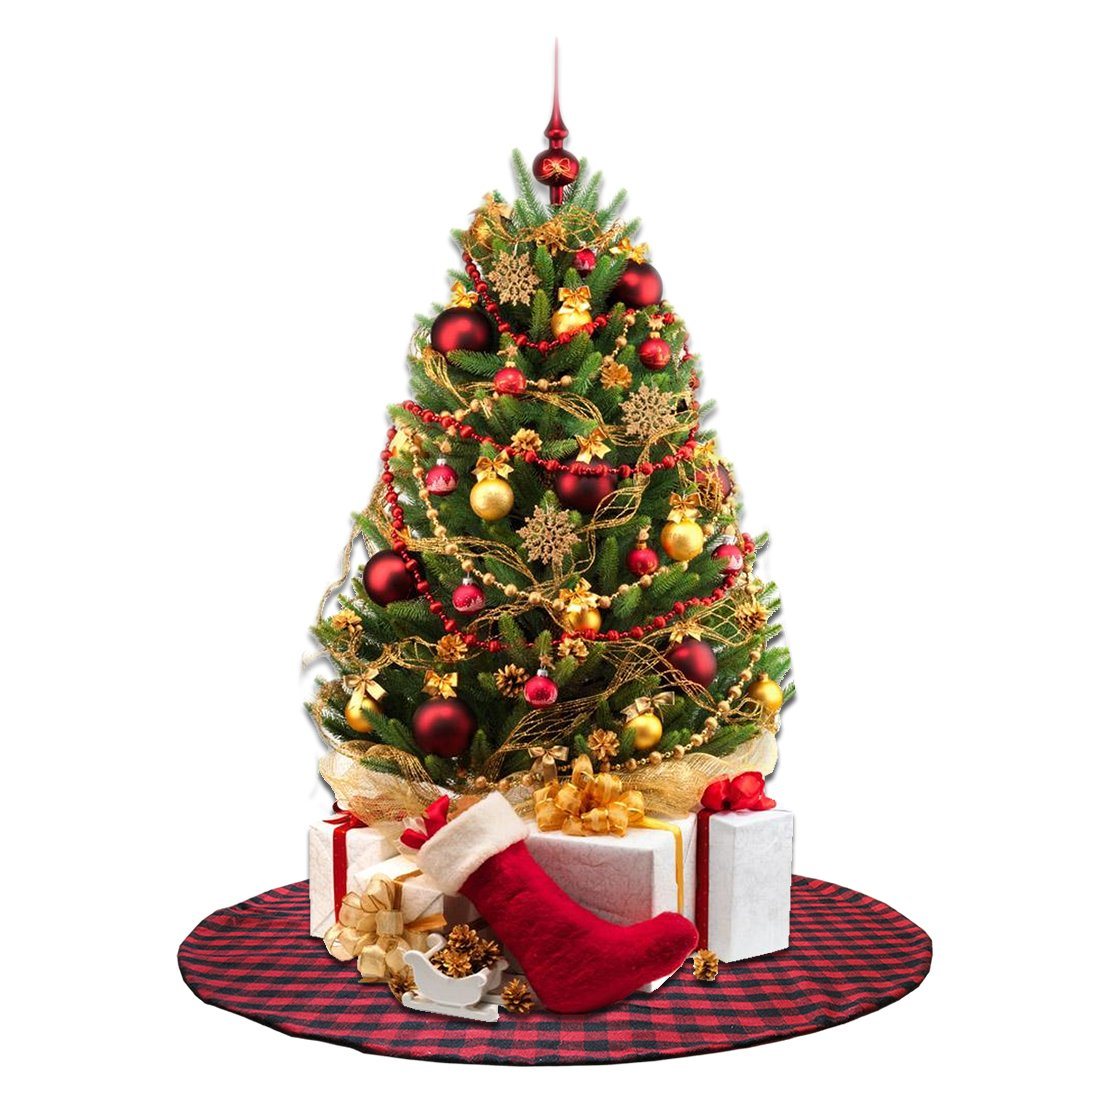 EDLDECCO 36 inch Plaid Christmas Tree Skirt with Red and Black Buffalo Check Tree Skirt Double layers a Fine Decorative Handicraft for Holiday Party